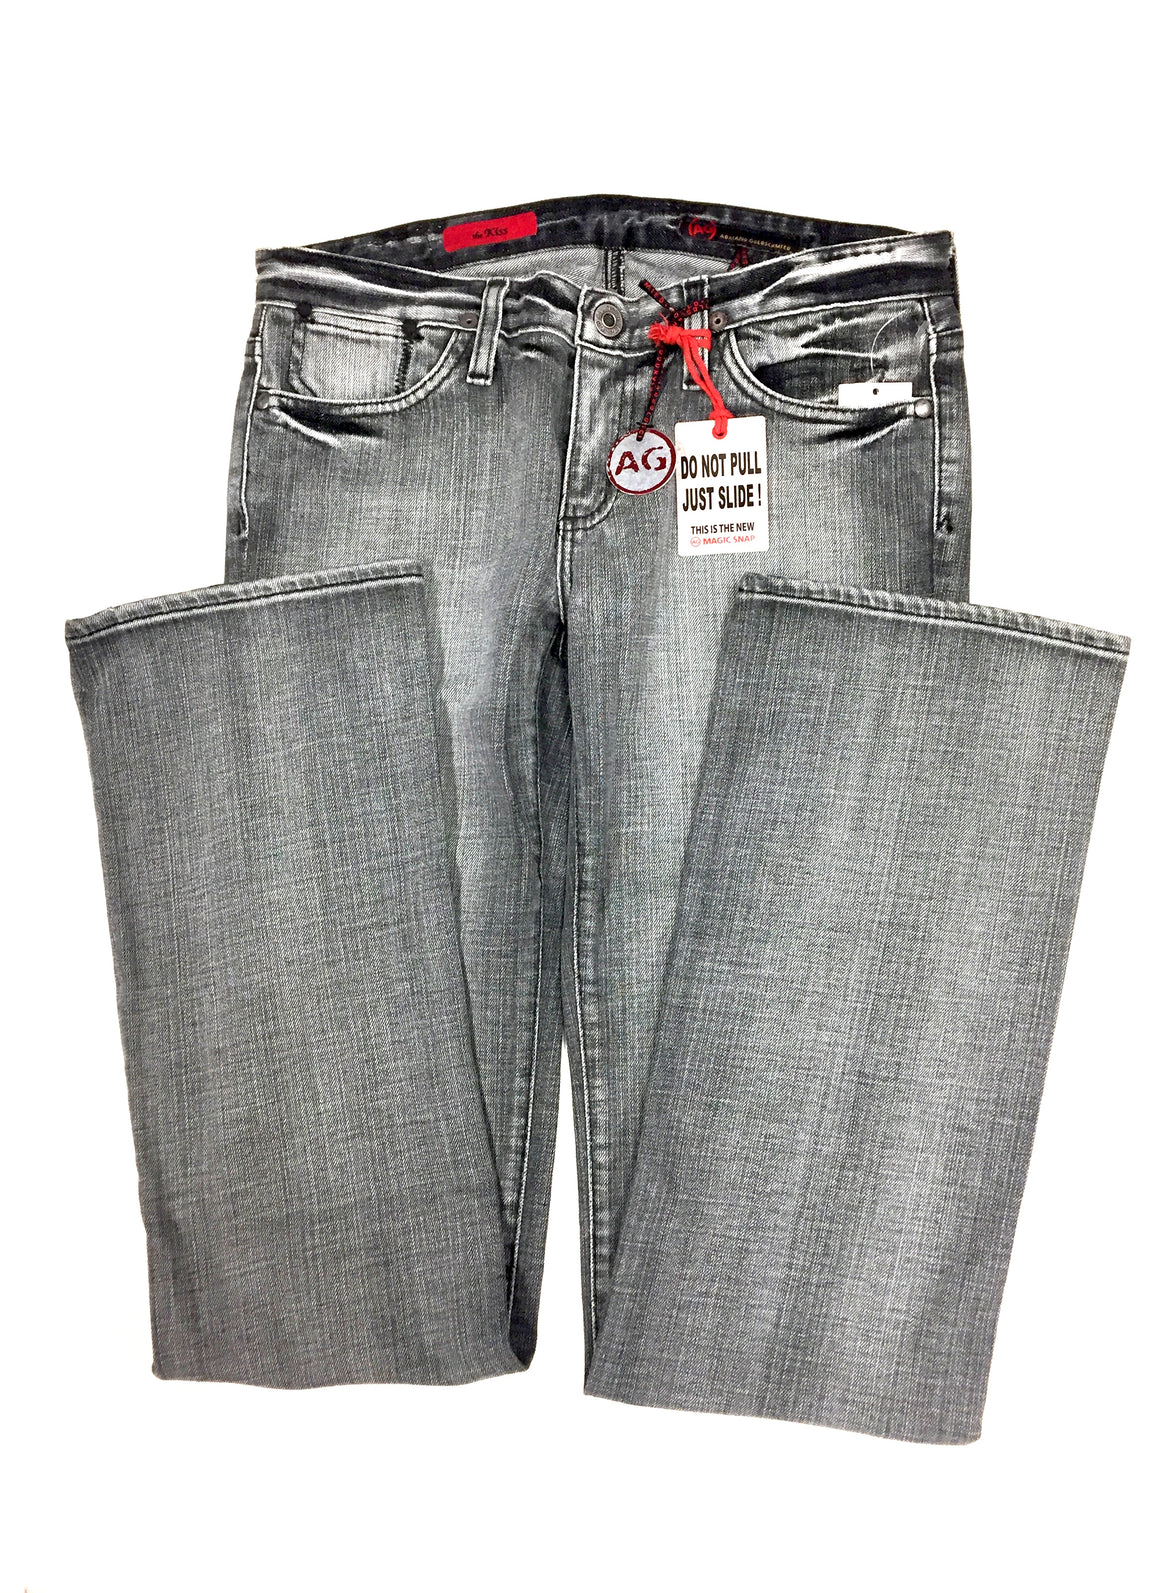 "bisbiz.com ADRIANO GOLDSCHMIED New with Tags Gray Distressed Cotton-Lycra Straight-Leg ""THE KISS"" Jeans Size: 27R - Bis Luxury Resale"